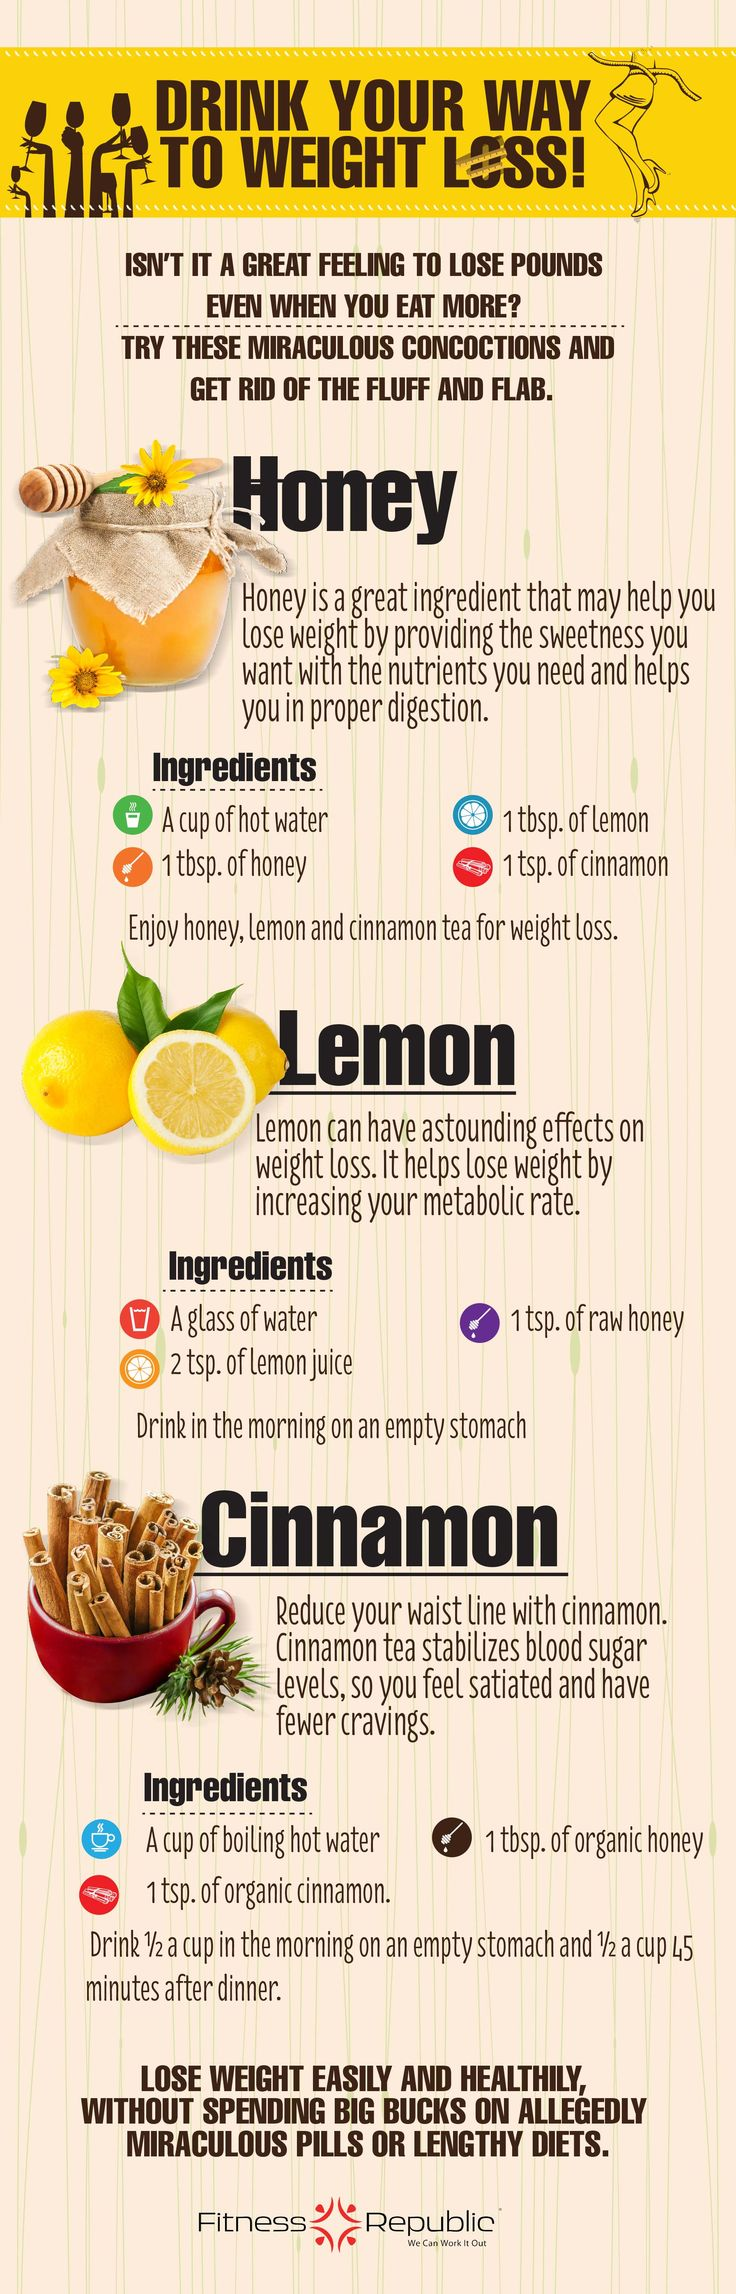 honey, lemon and cinnamon Looks like I might have to start liking lemon haha